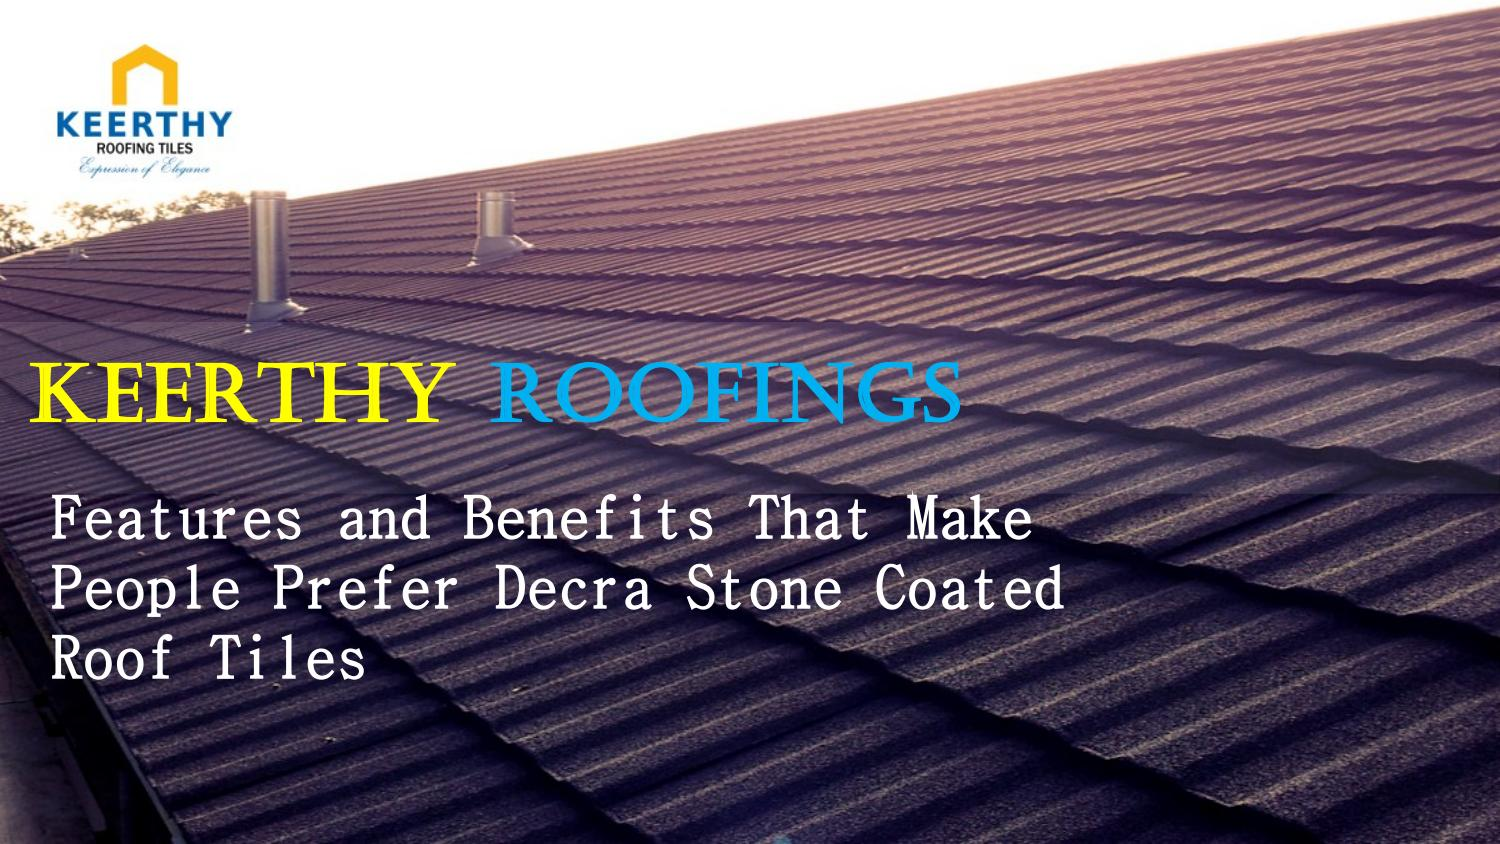 Features And Benefits That Make People Prefer Decra Stone Coated Roof Tiles By Keerthyroofings Issuu